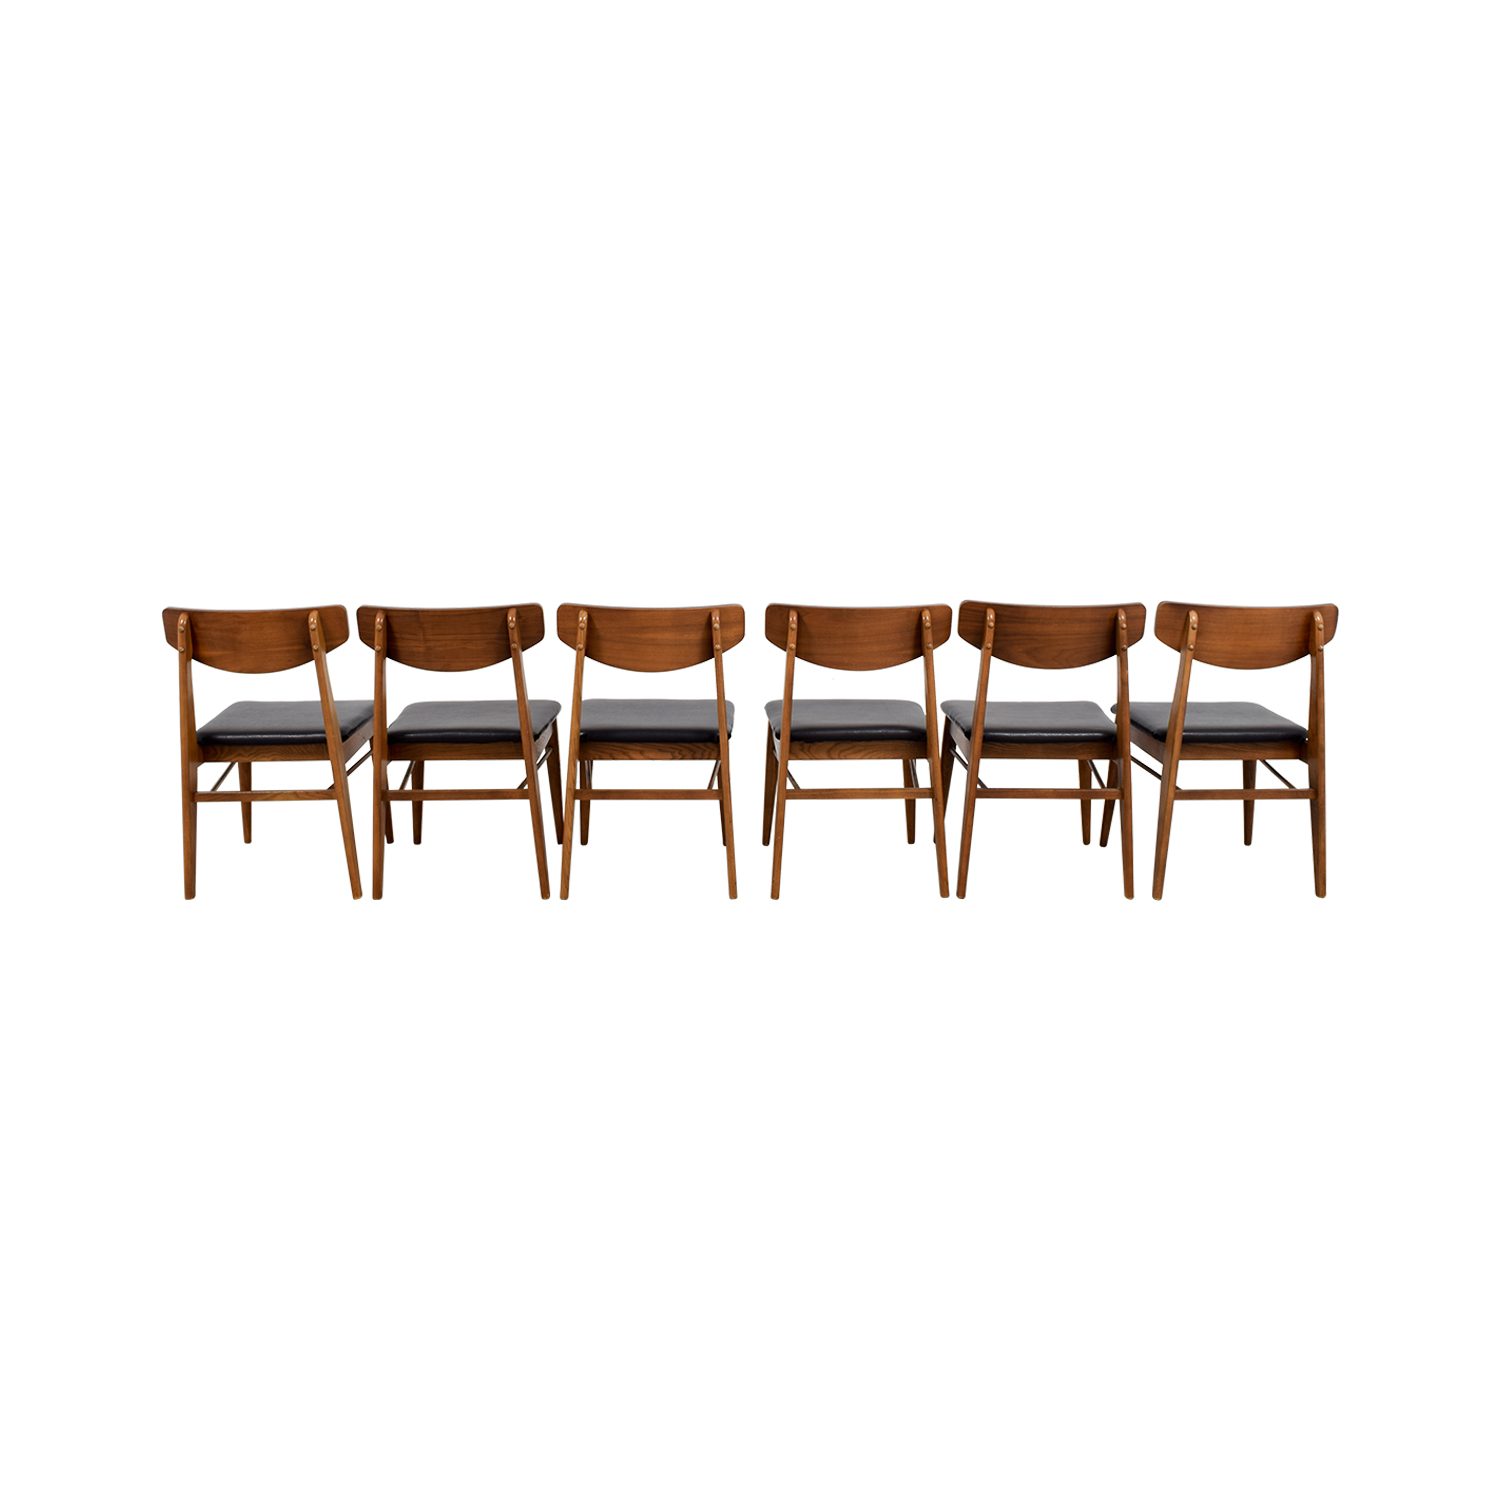 Danish Mid-Century Chairs